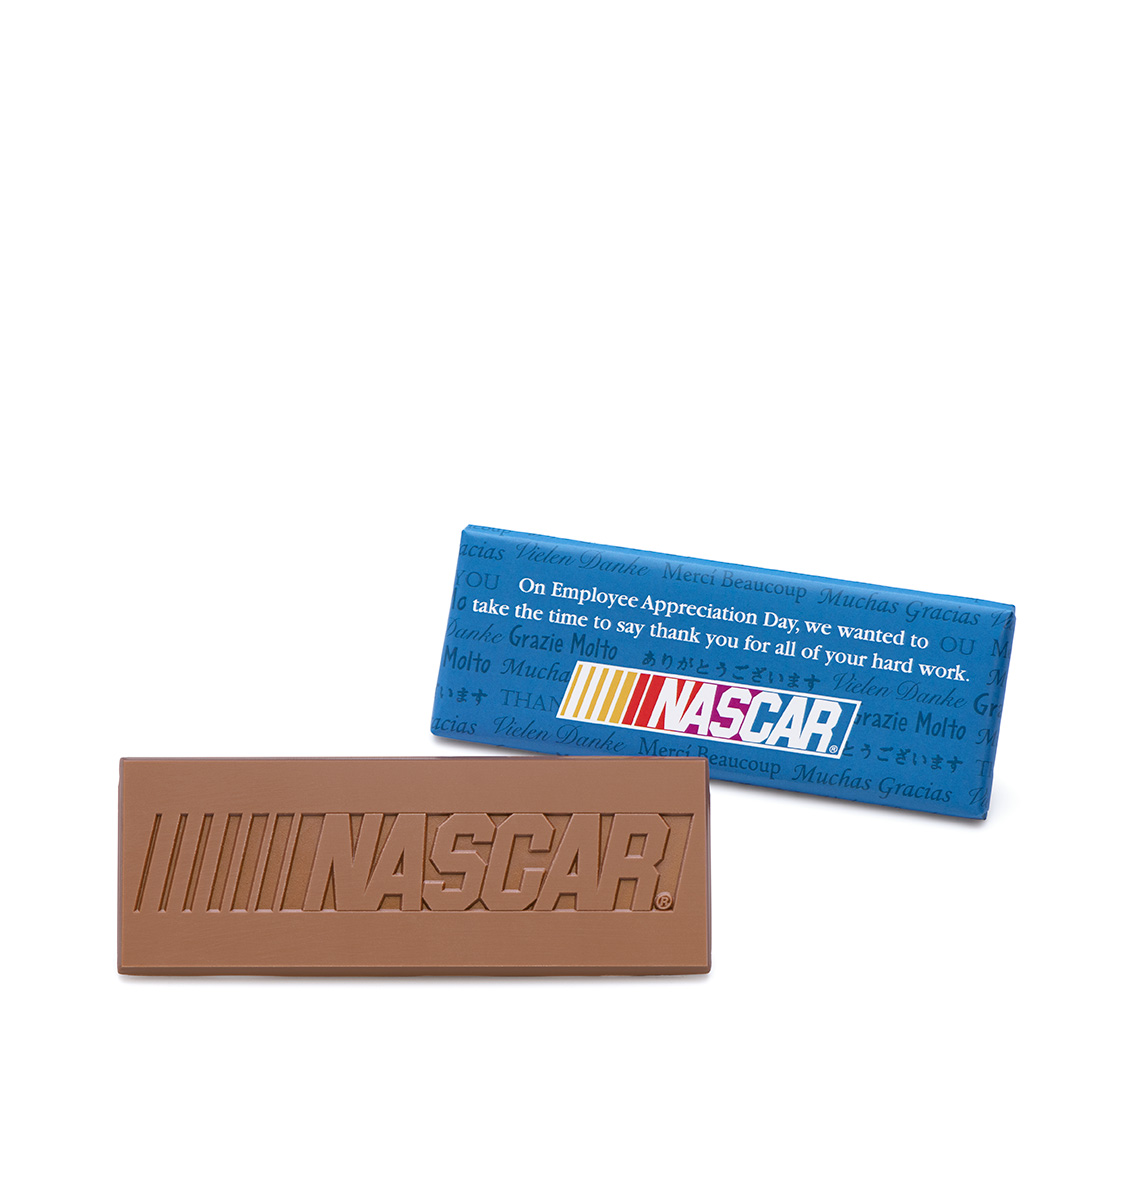 fully-custom-chocolate-1025-classic-2x5-wrapper-bar-3